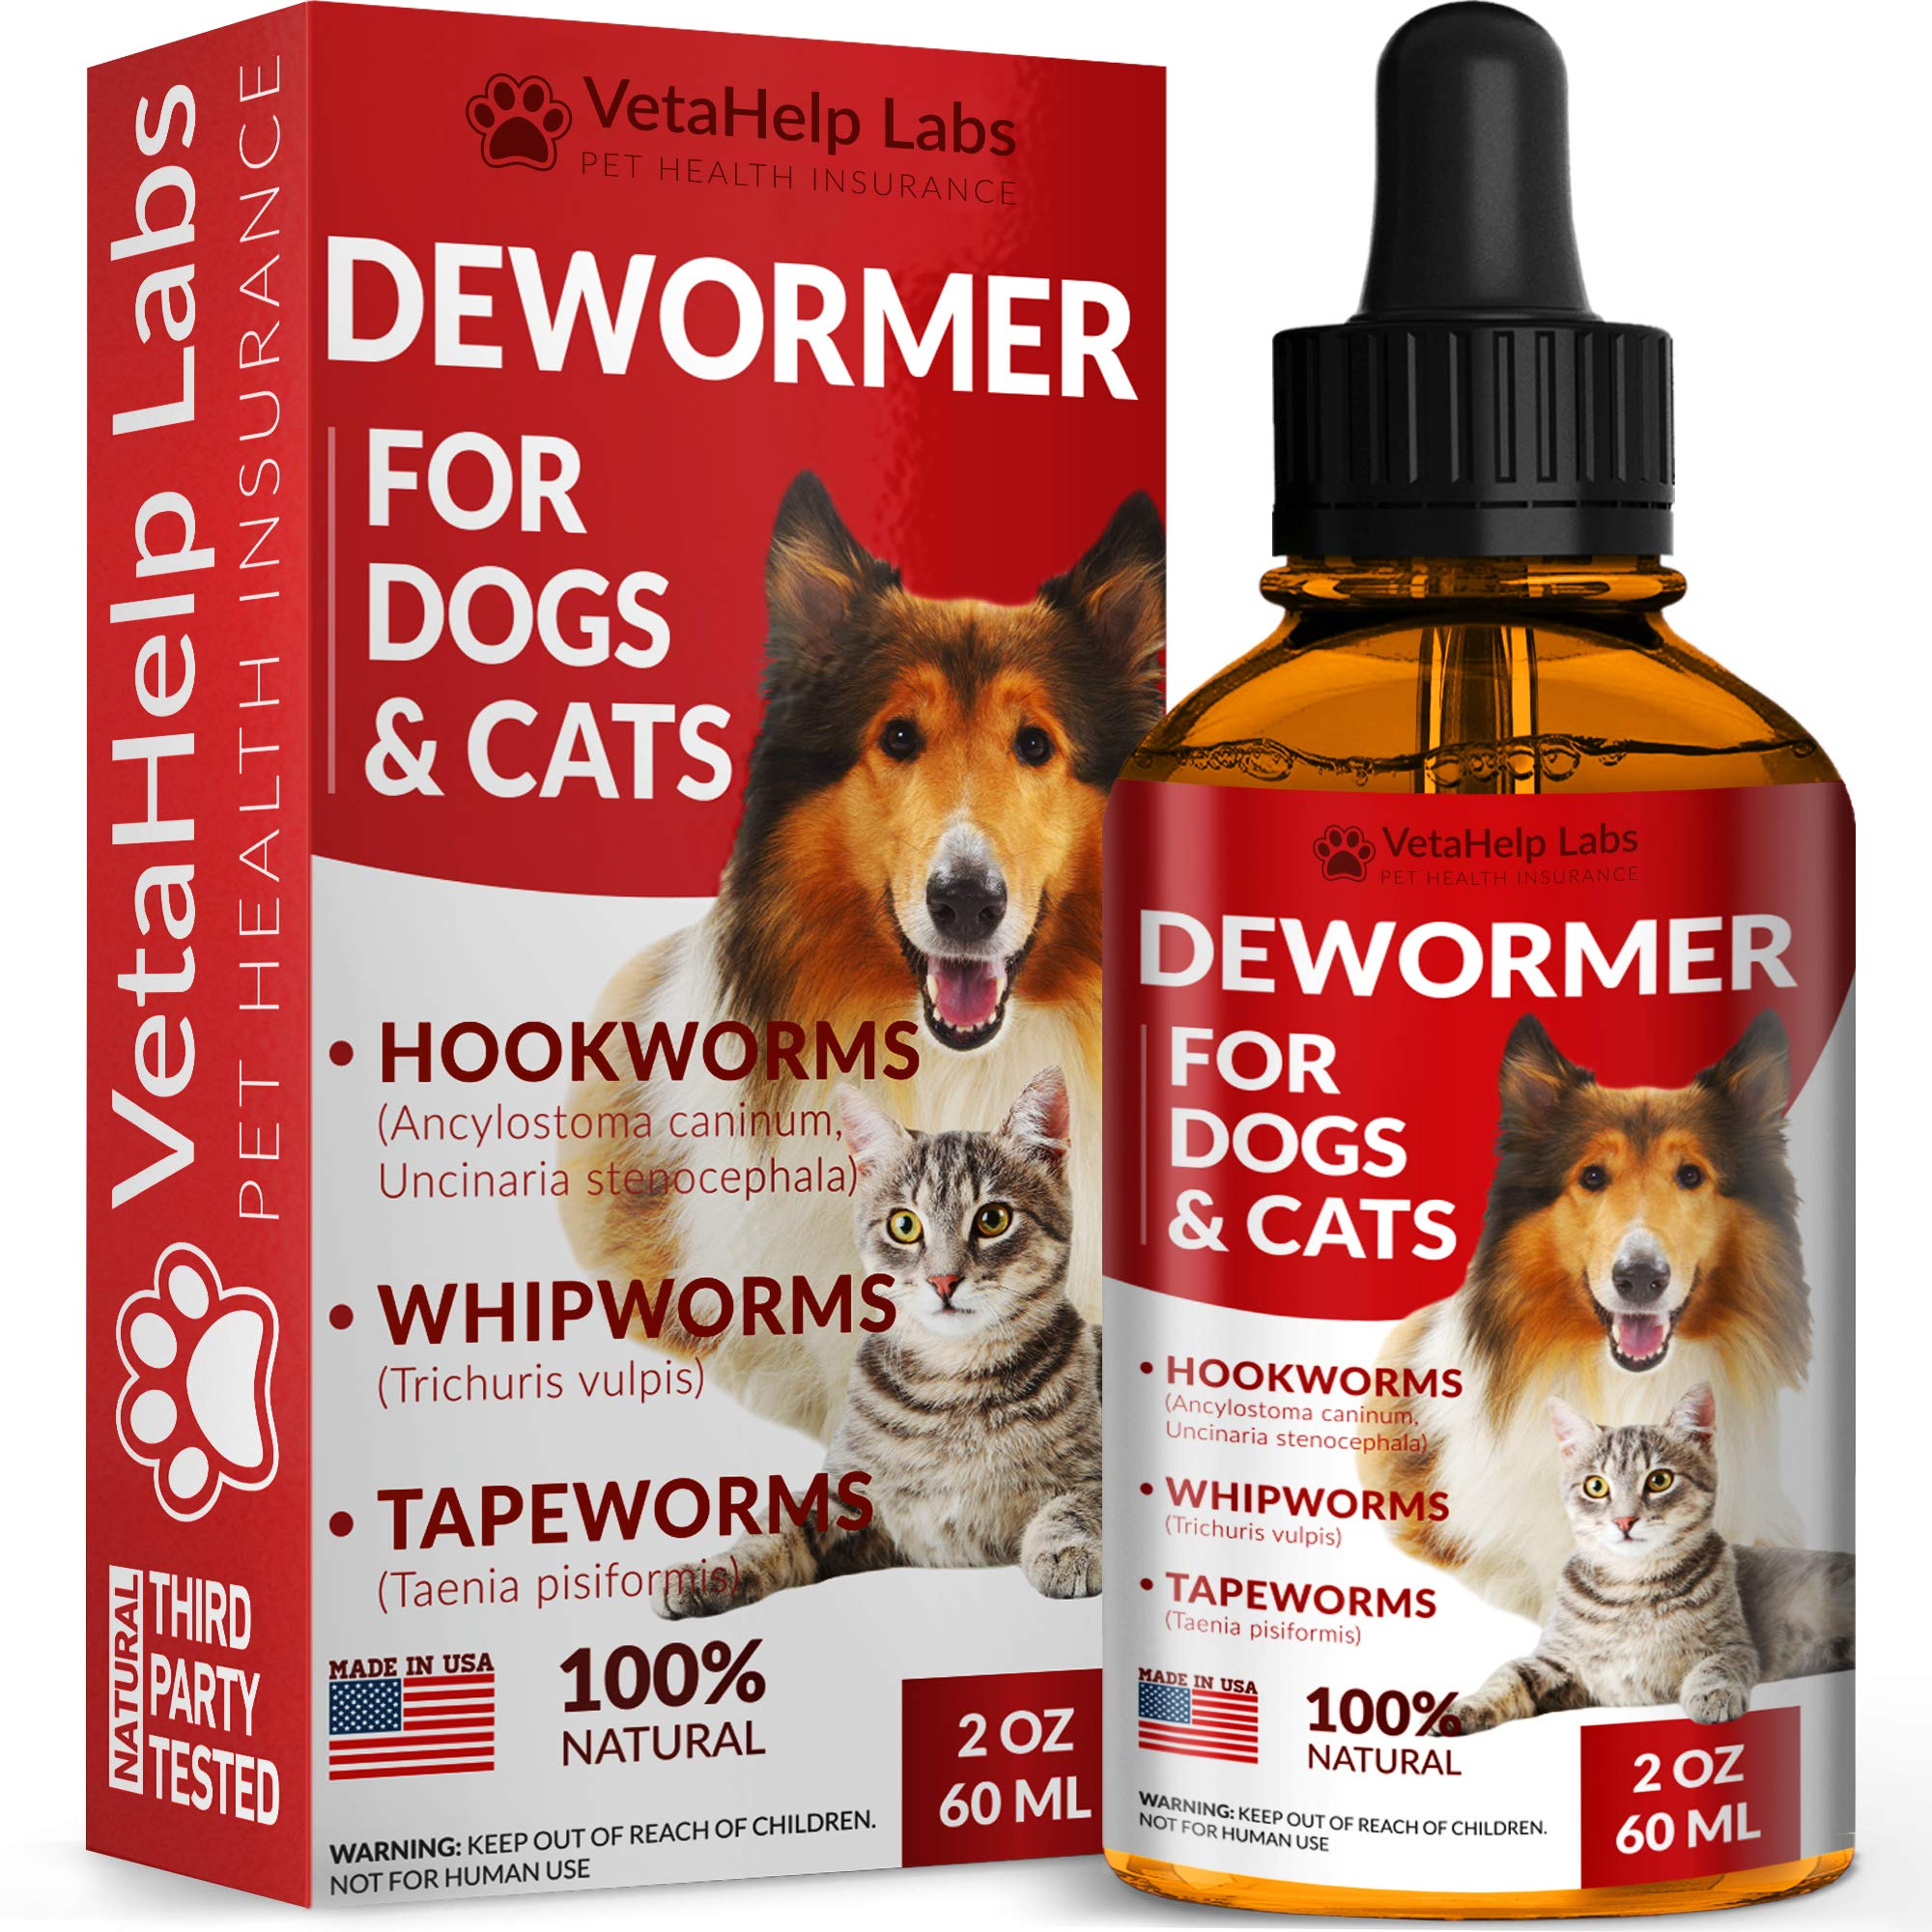 VetaHelp Labs Dewormer Dogs Cats